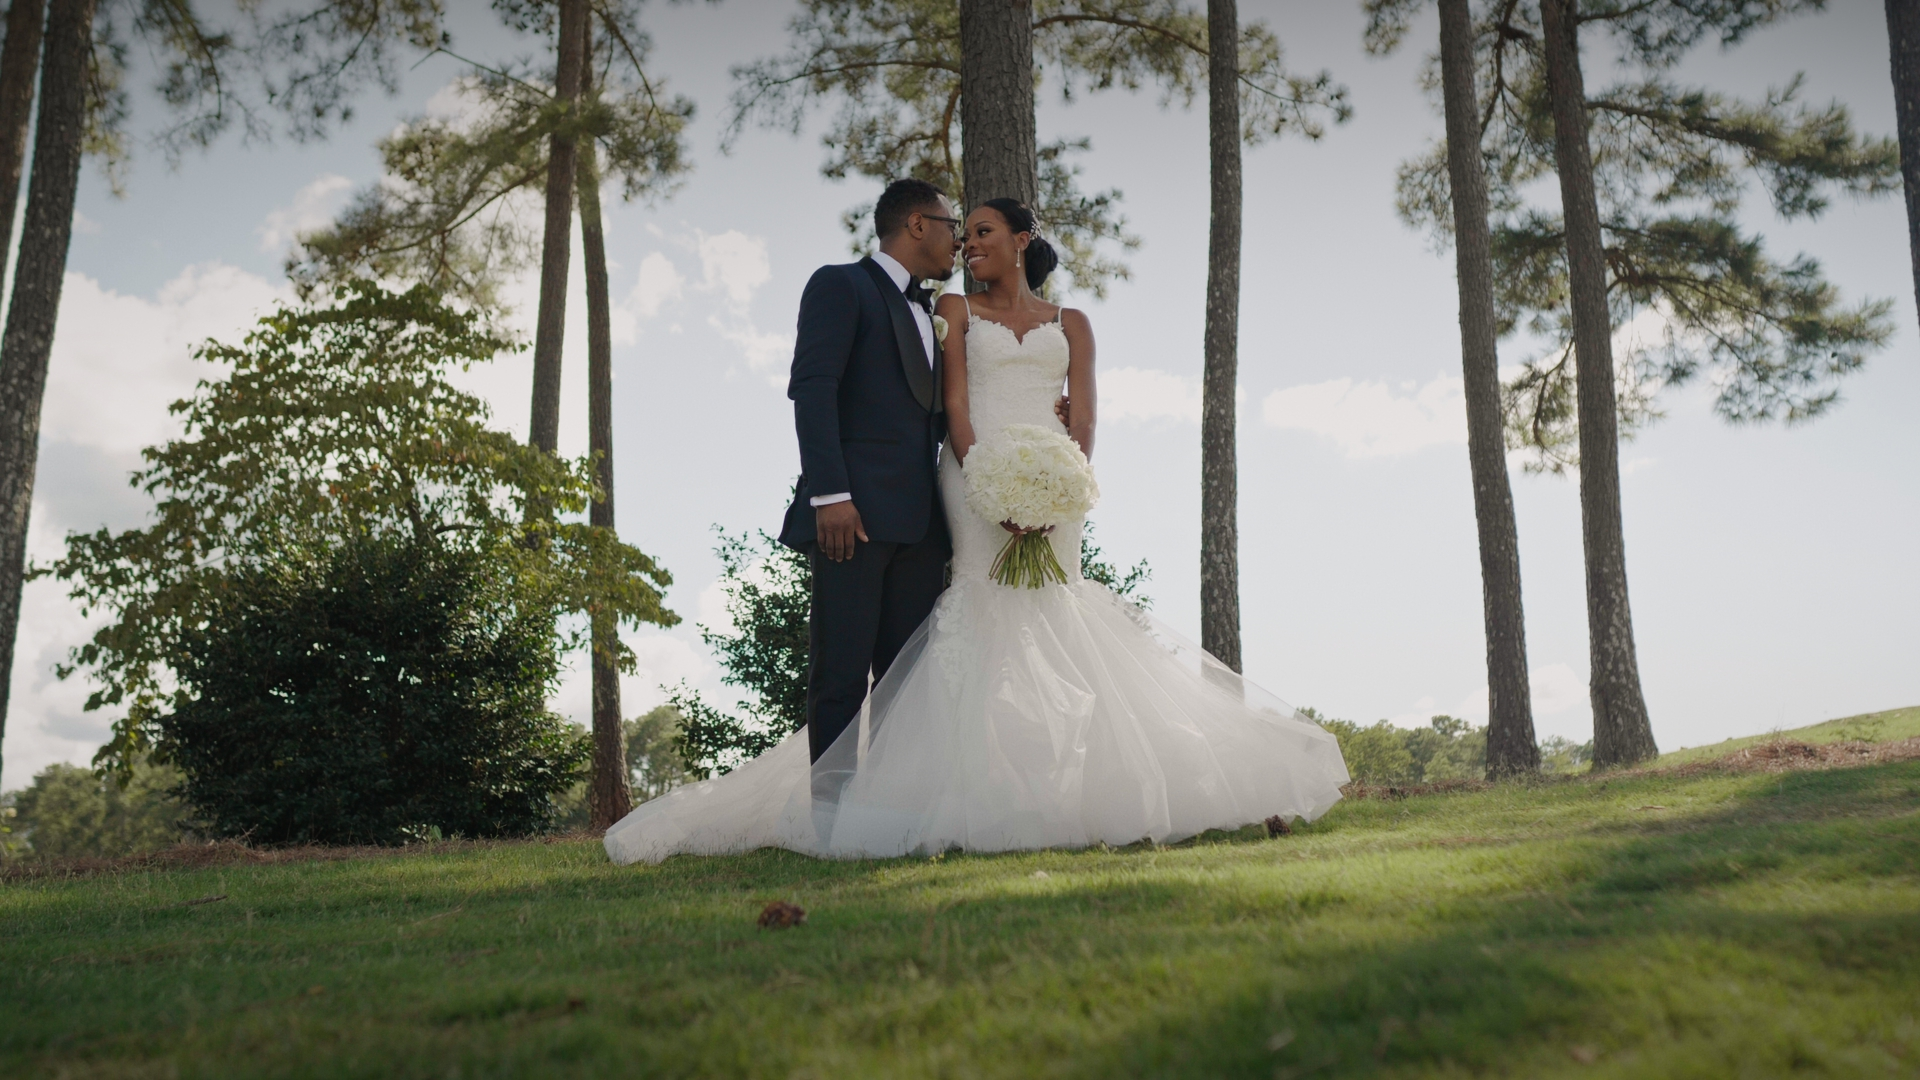 Shari + Tajshiek | Birmingham, Alabama | Events at Haven